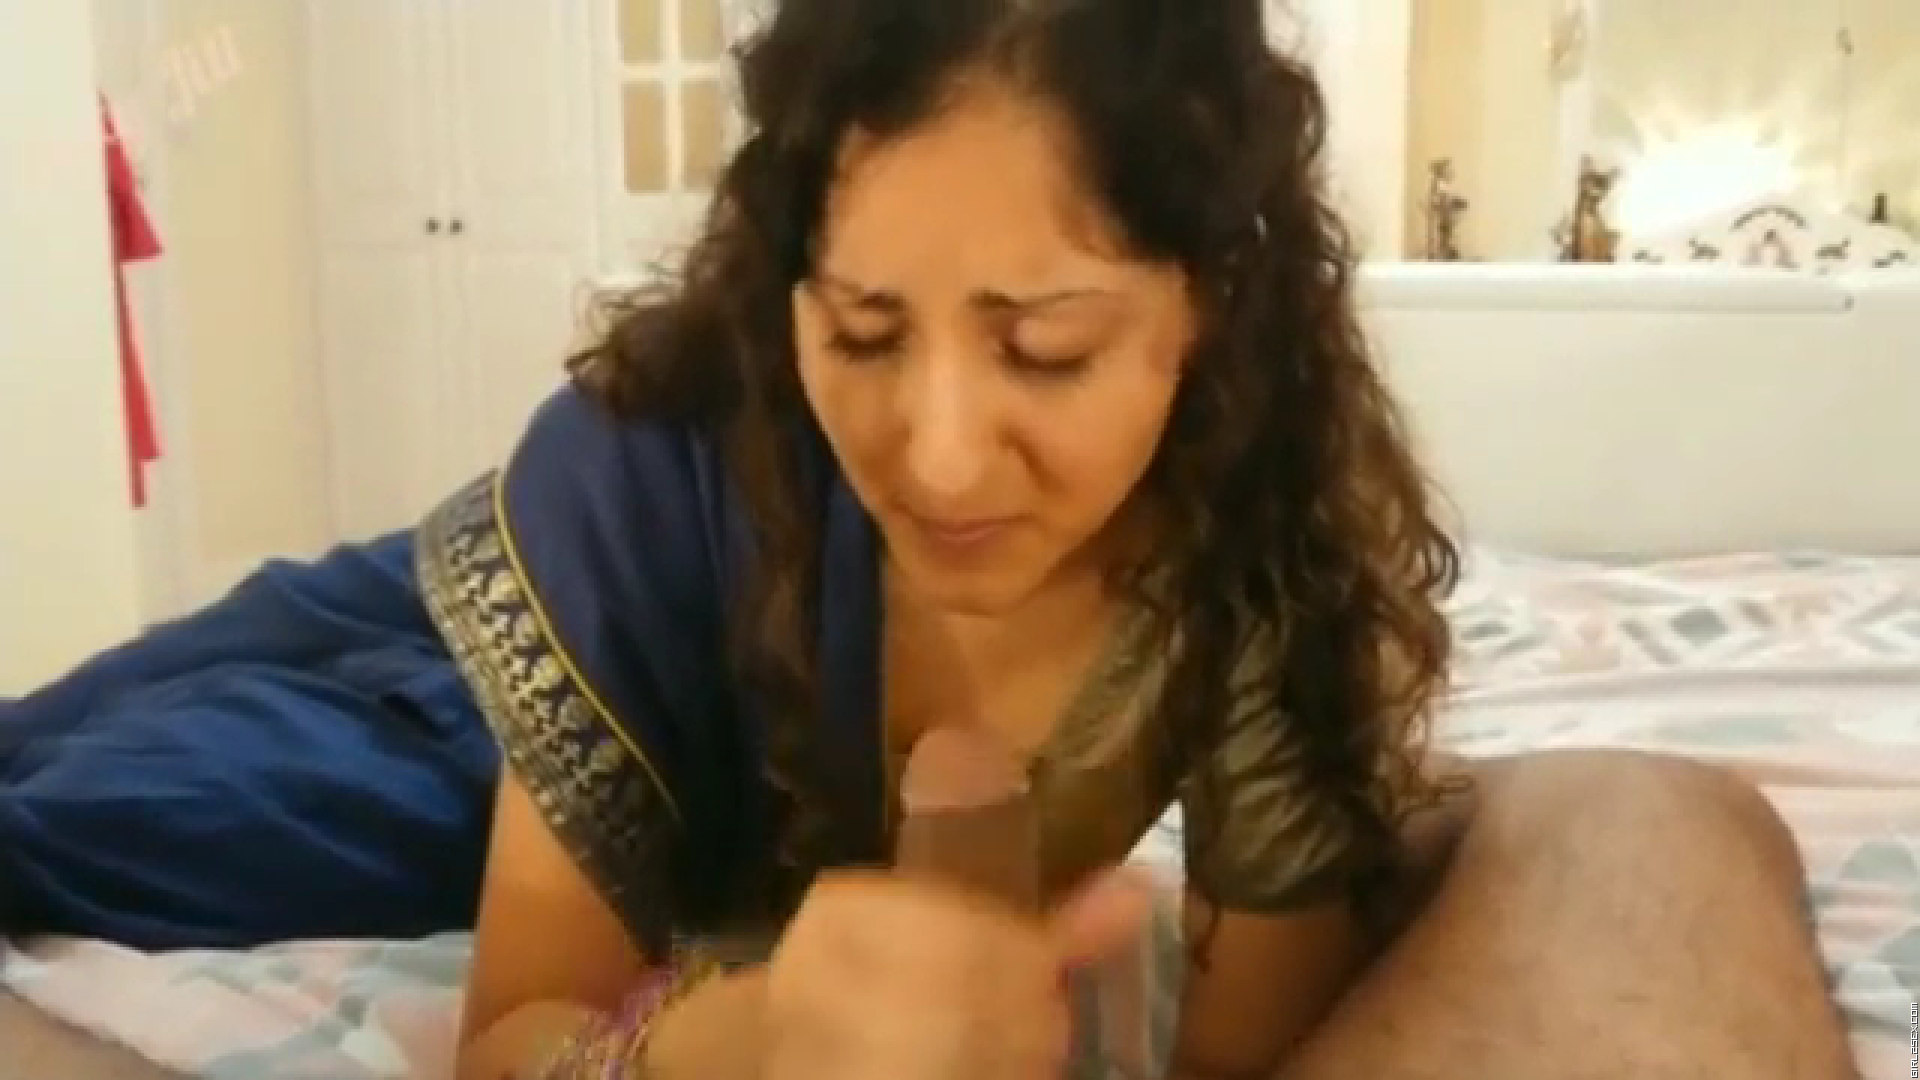 Forced to suck grand father's cock - young daughter in saree learns kamasutra.mp4